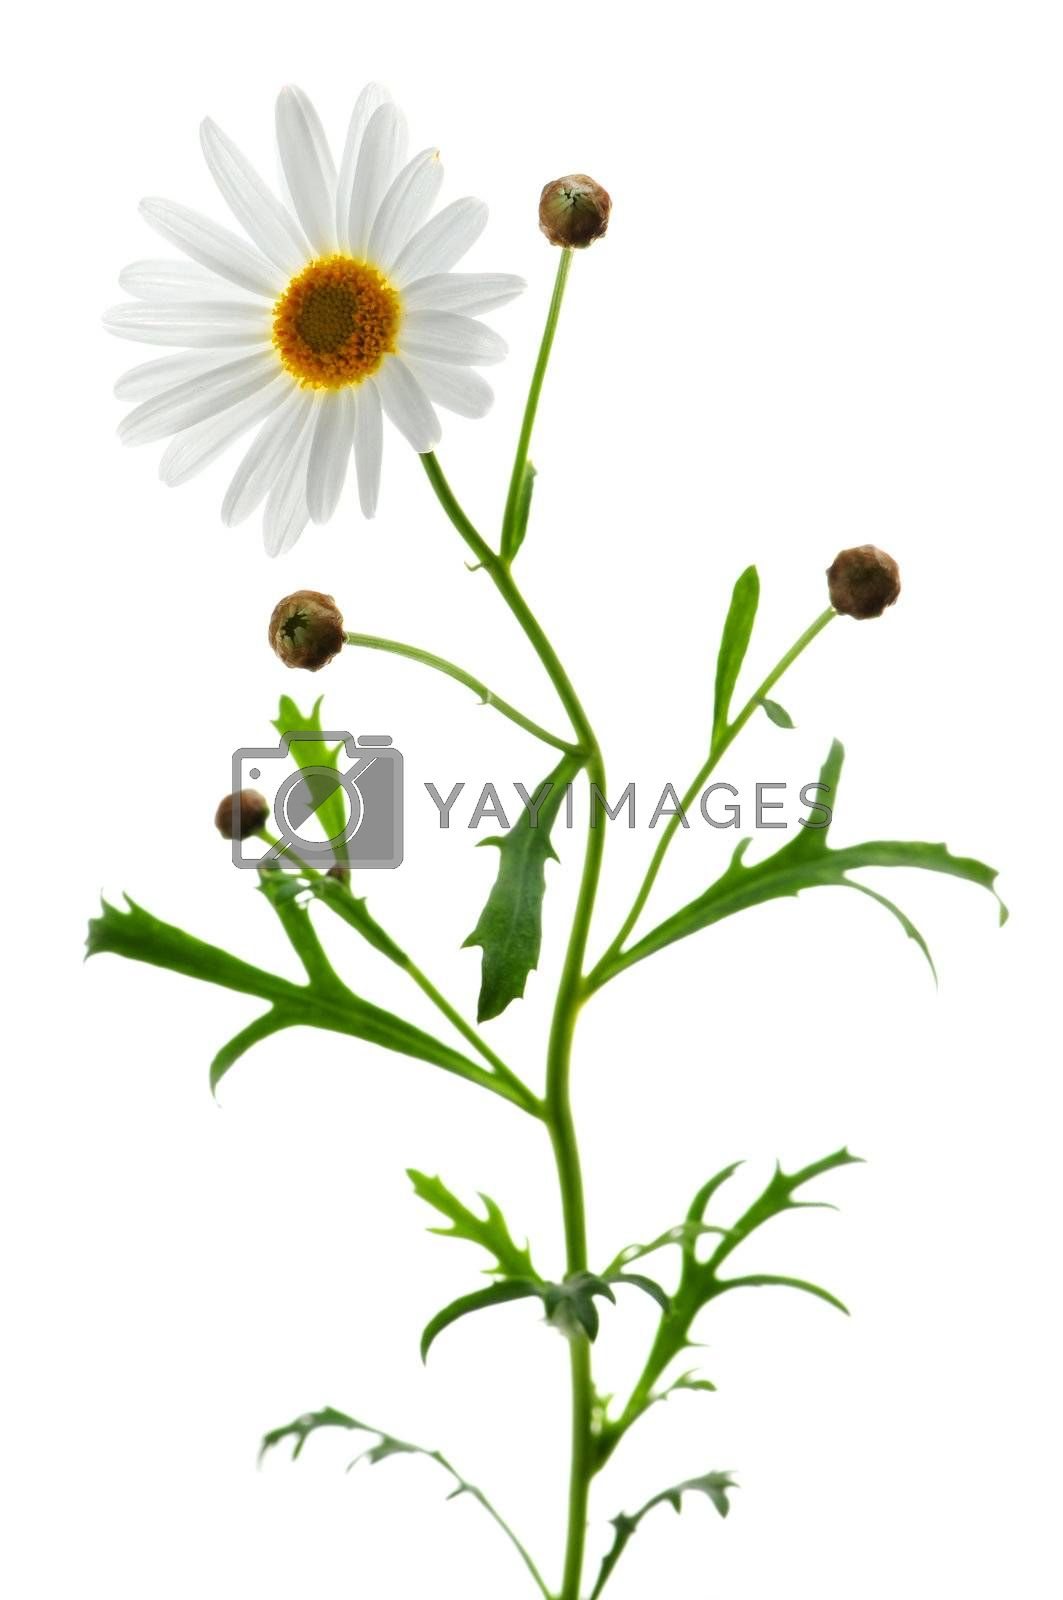 Daisy plant with a flower isolated on white background